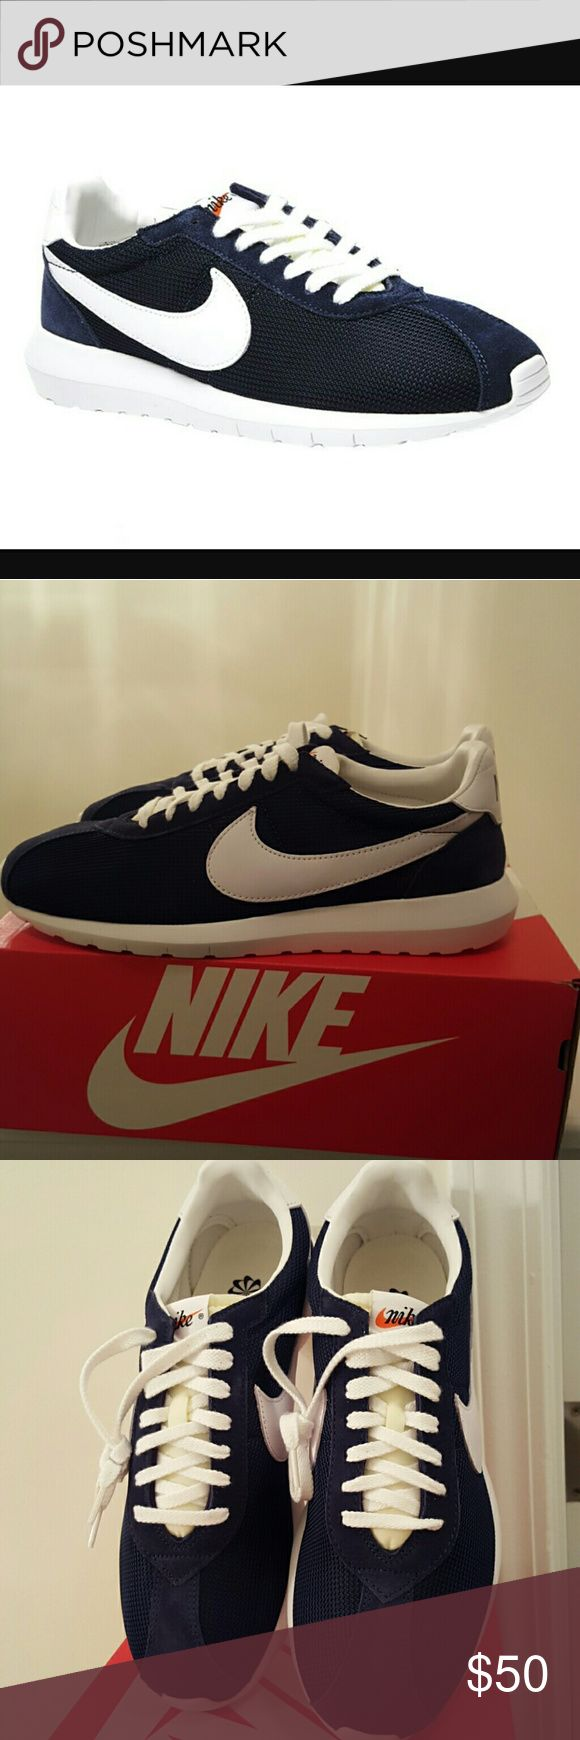 NIB! MEN'S NIKE ROSHE LD -1000 QS Color : Navy Blue & White                         **** PRICE IS FIRM! ****                        **** I DON'T TRADE! **** Nike Shoes Athletic Shoes